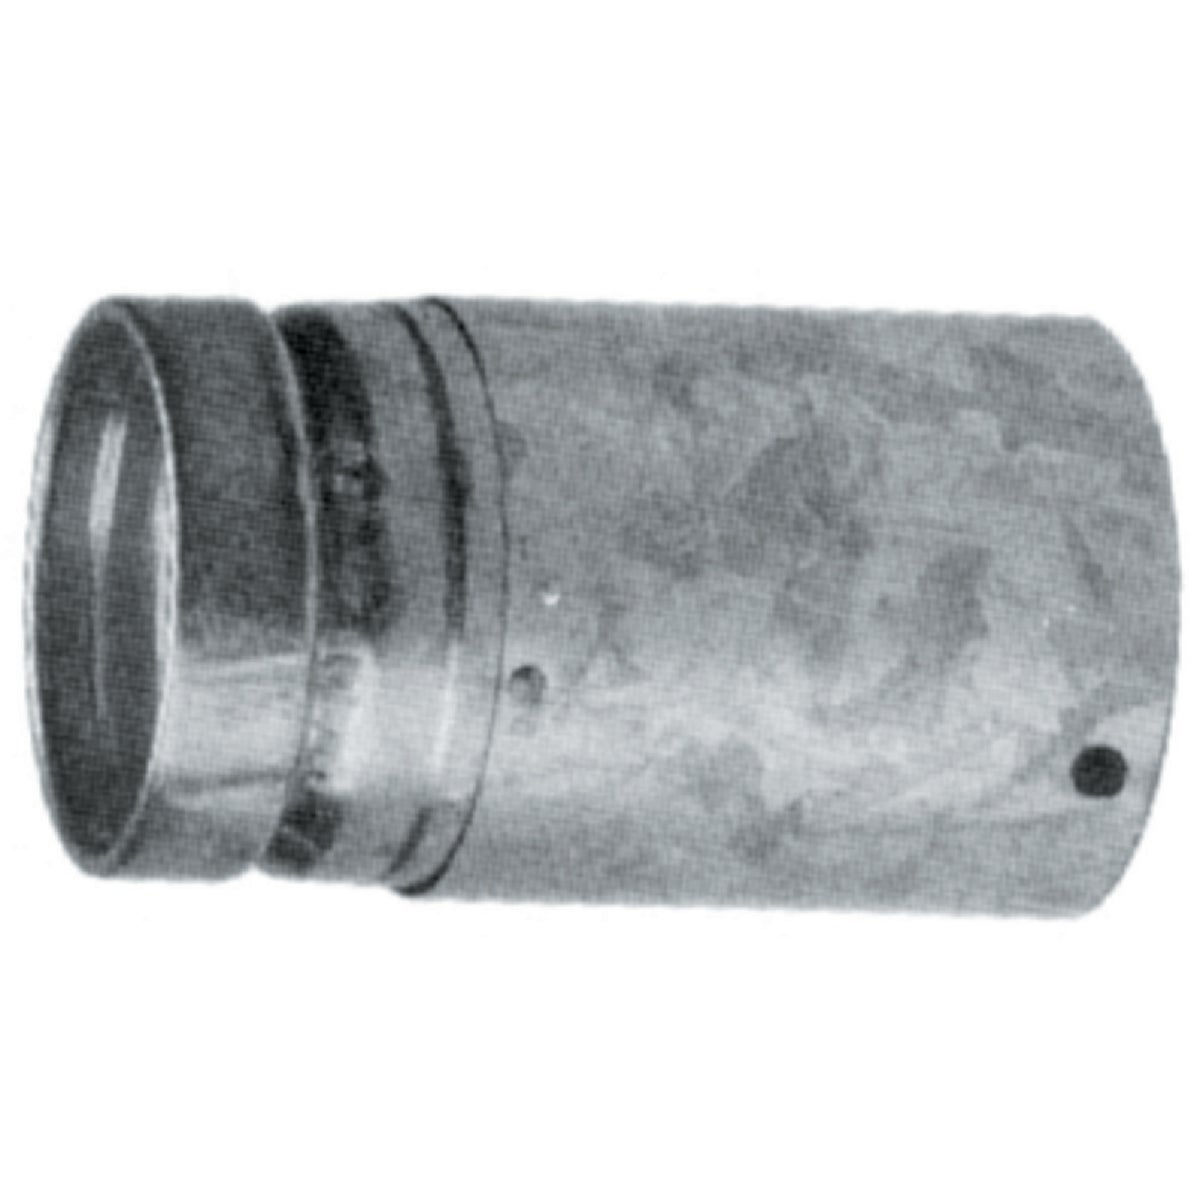 "4"" ADJ GAS VENT PIPE - 4RV-EZAJ12 by Selkirk Corporation"